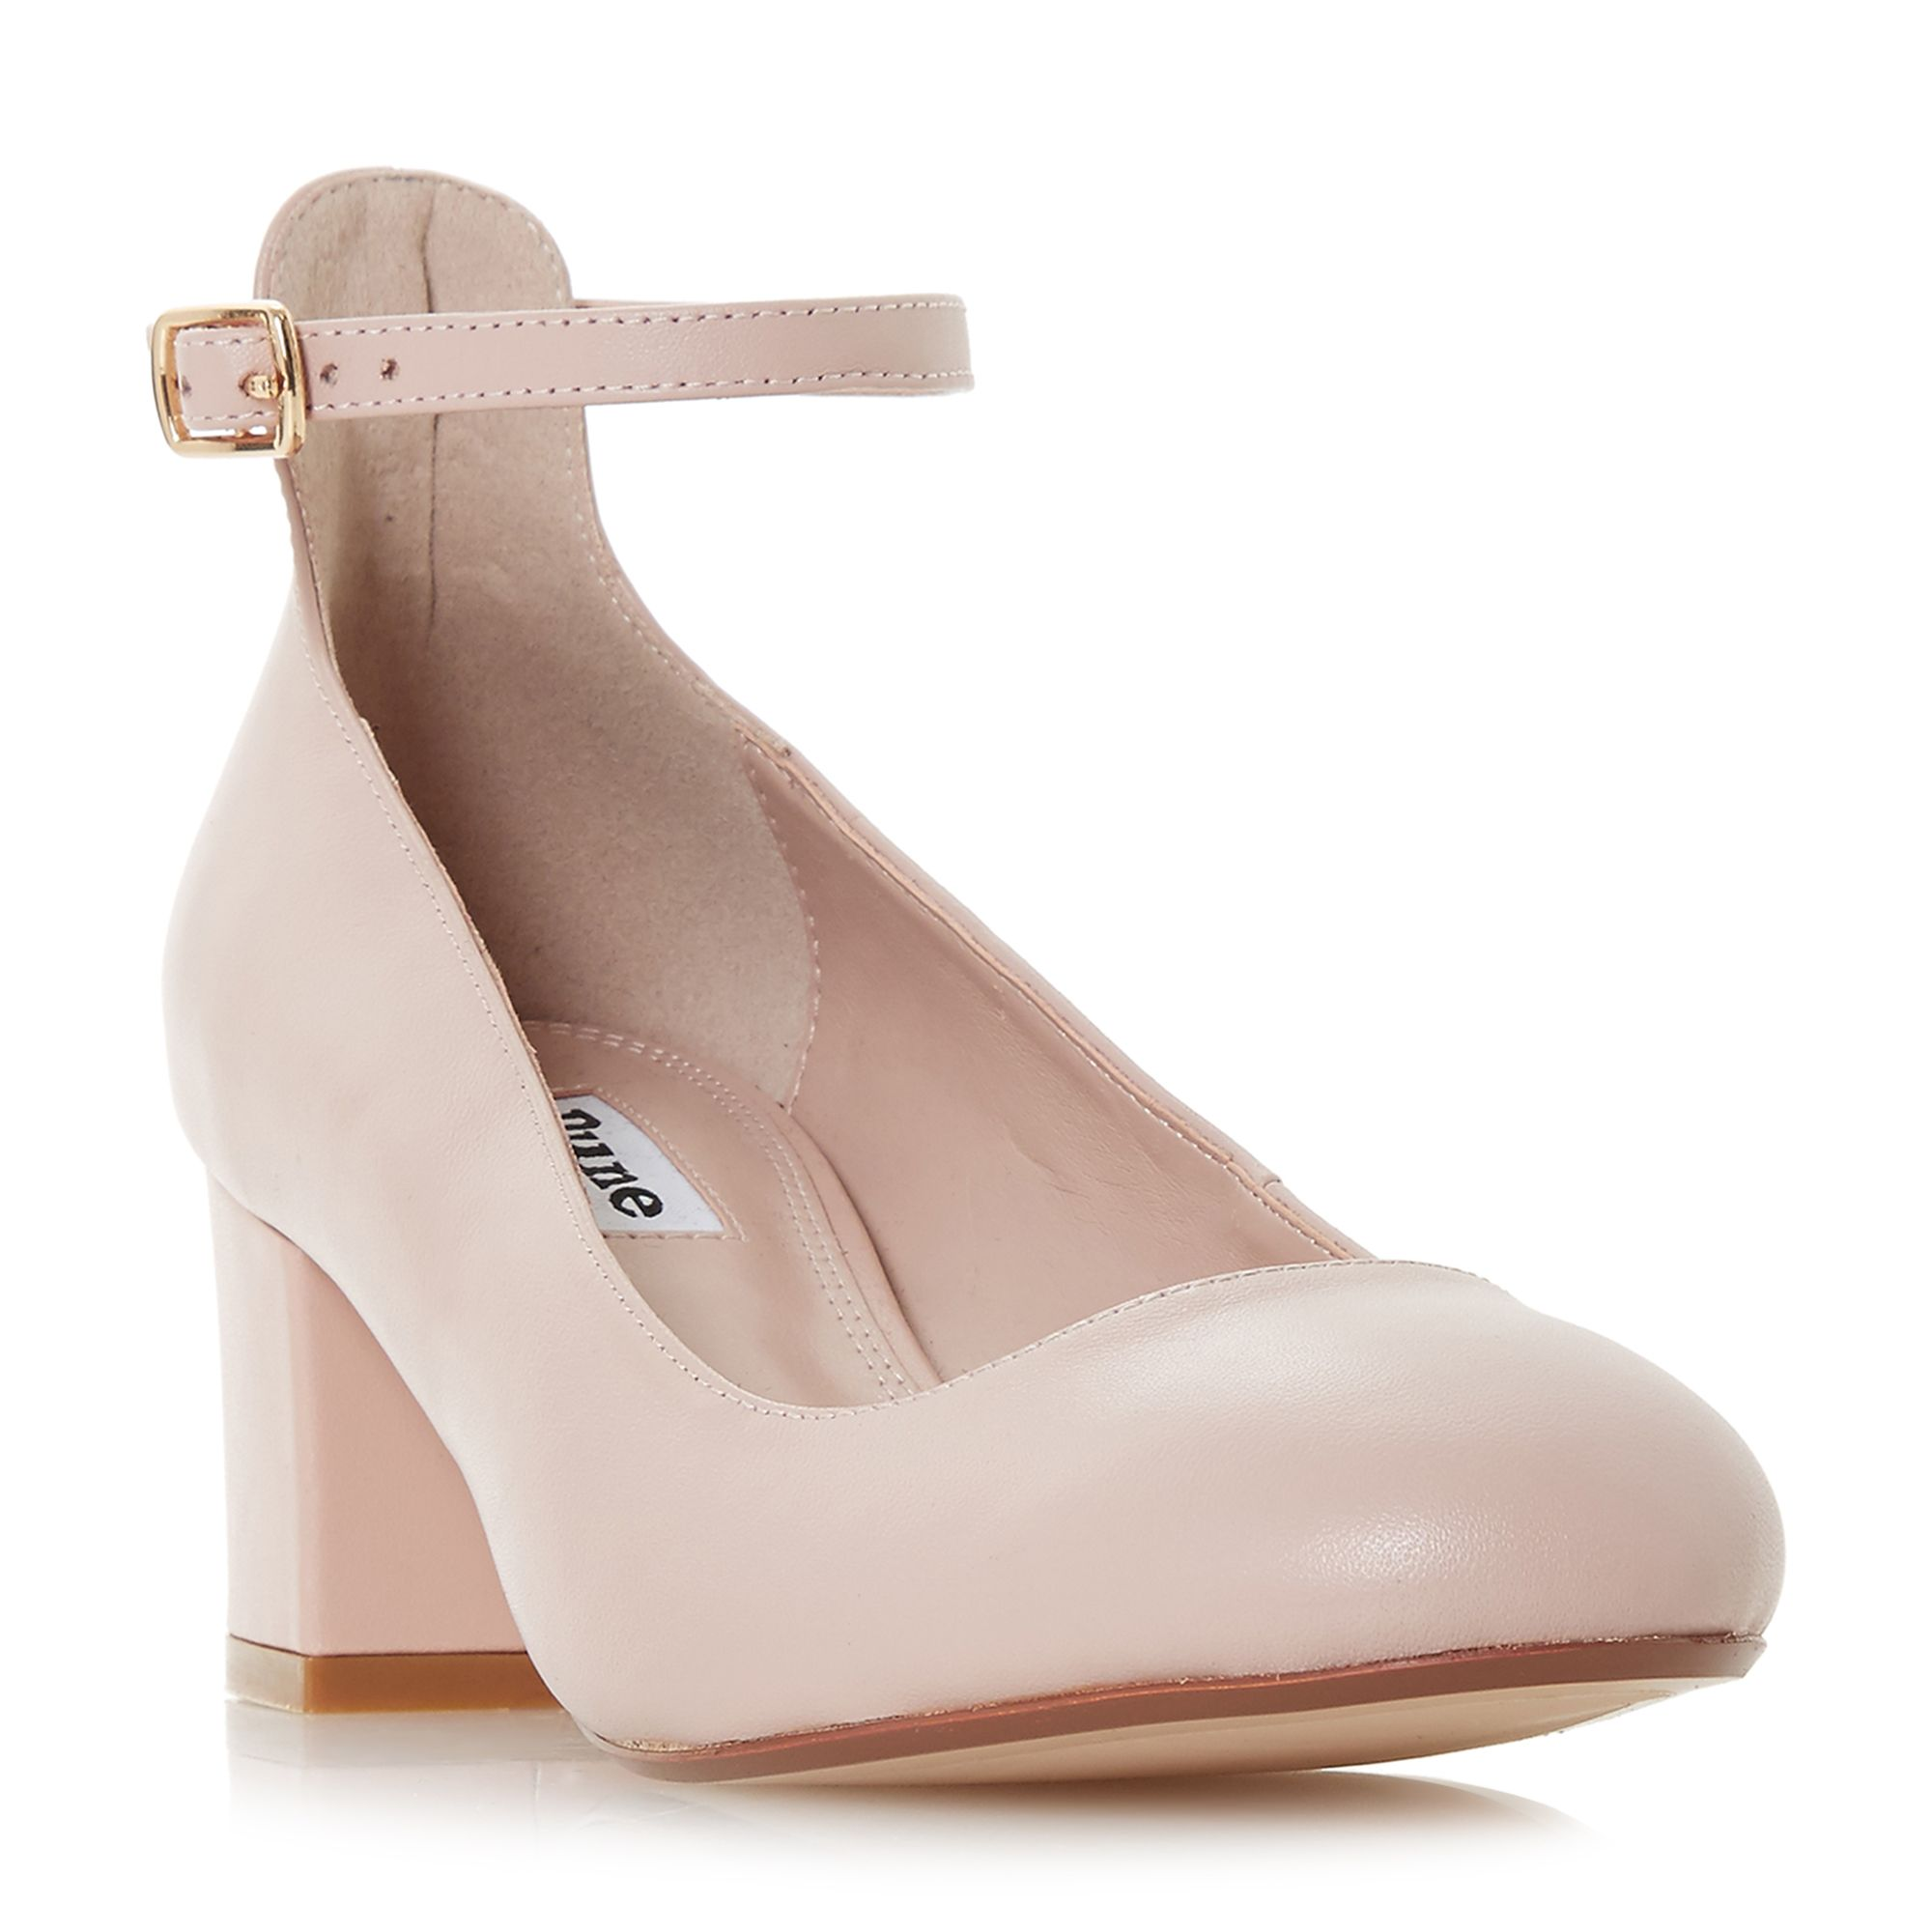 Dune Allie Block Heel Ankle Strap Court Shoes, Pink